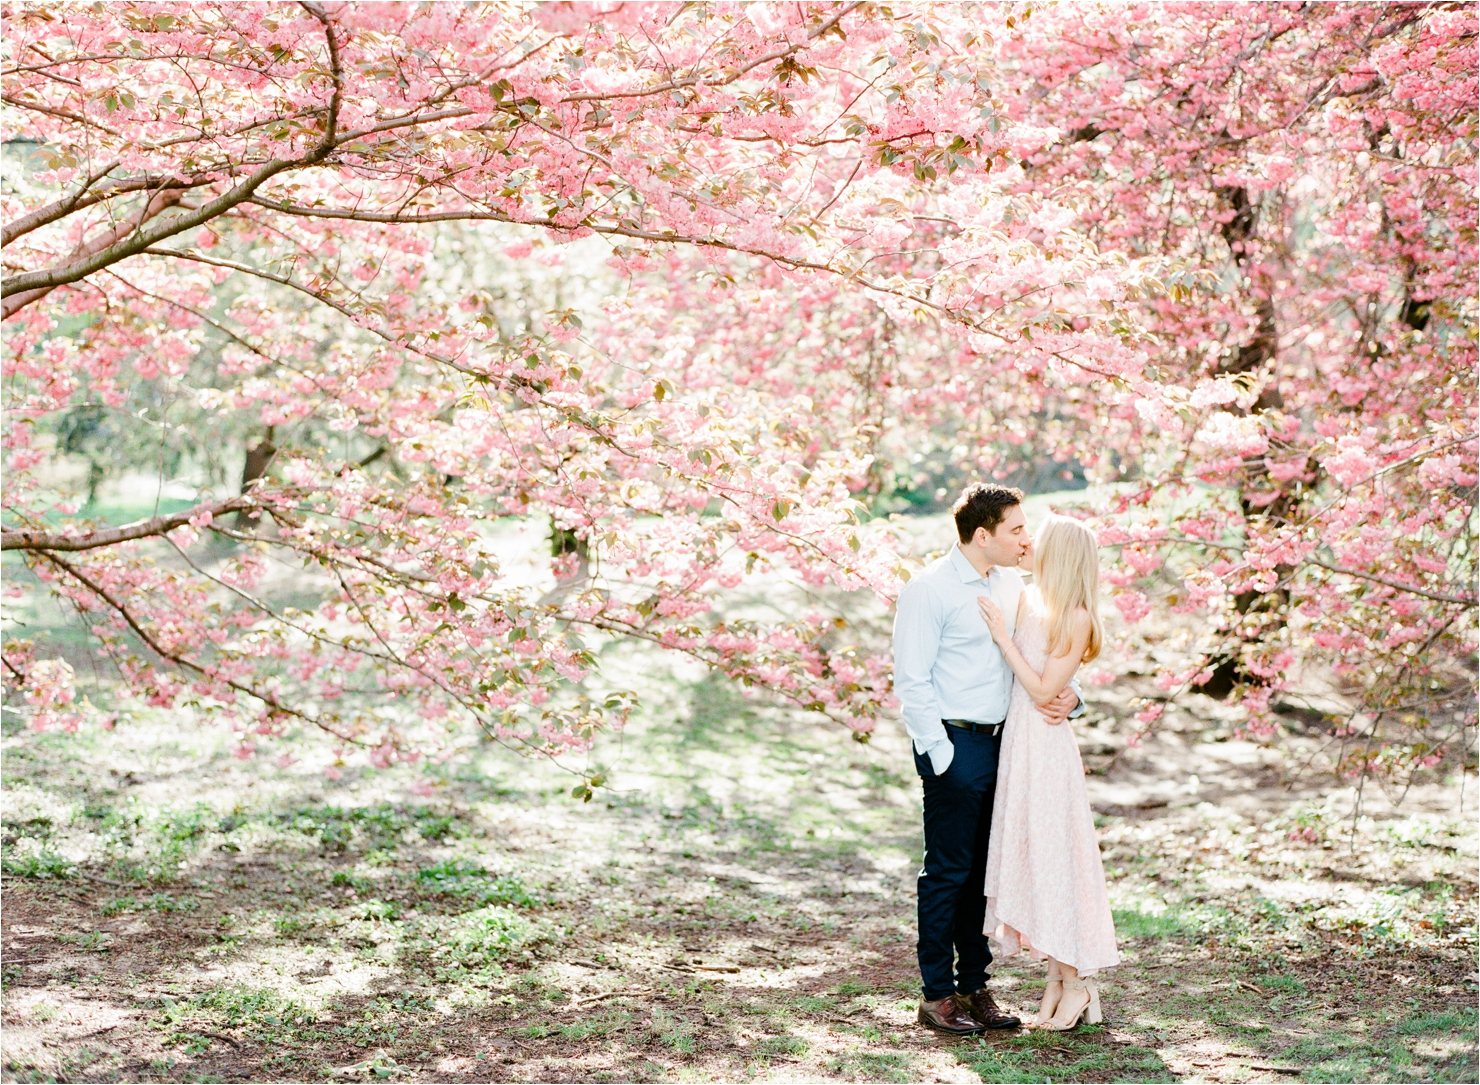 Central Park Engagement Session Ideas Locationsin NYC